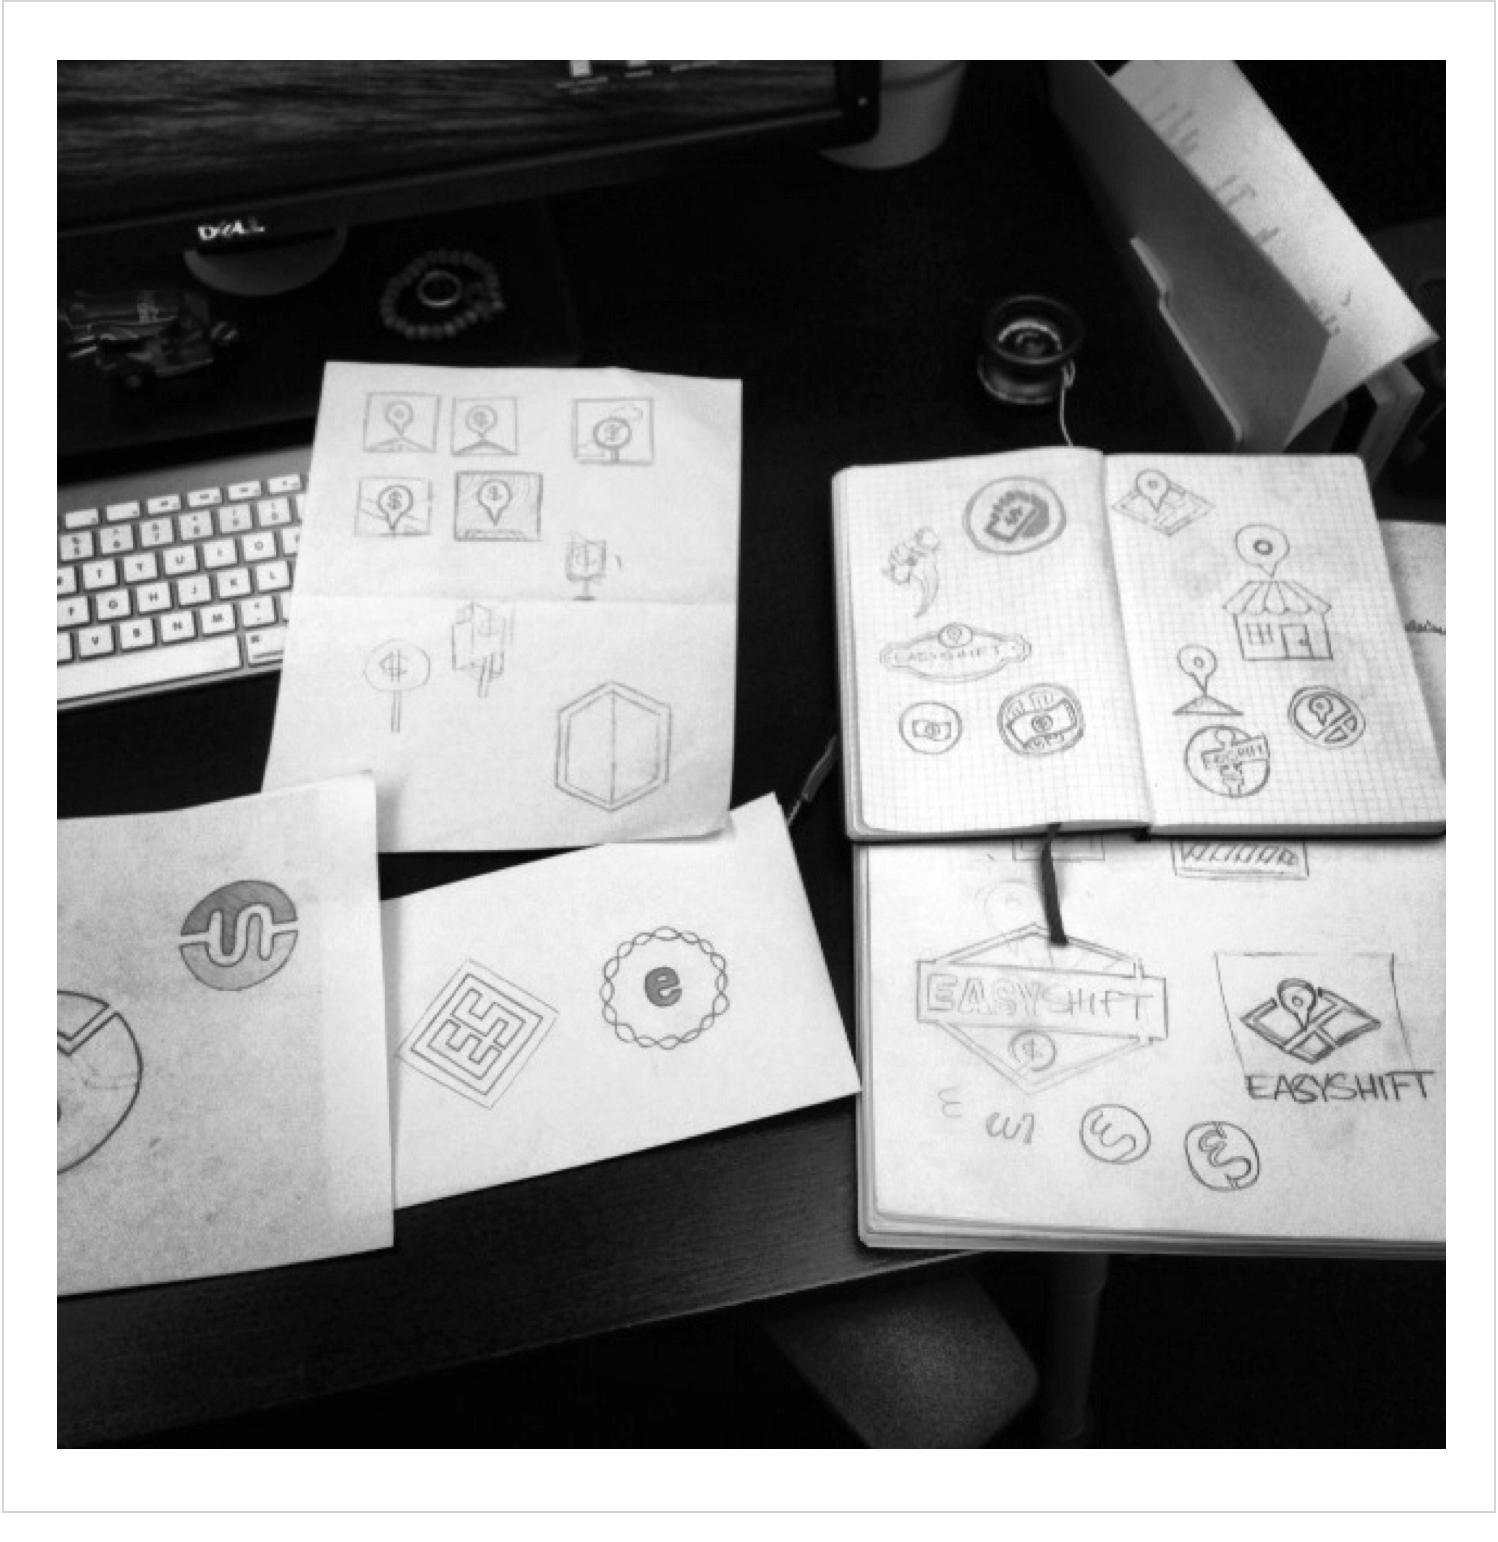 Fig 1. Original logo concept sketches